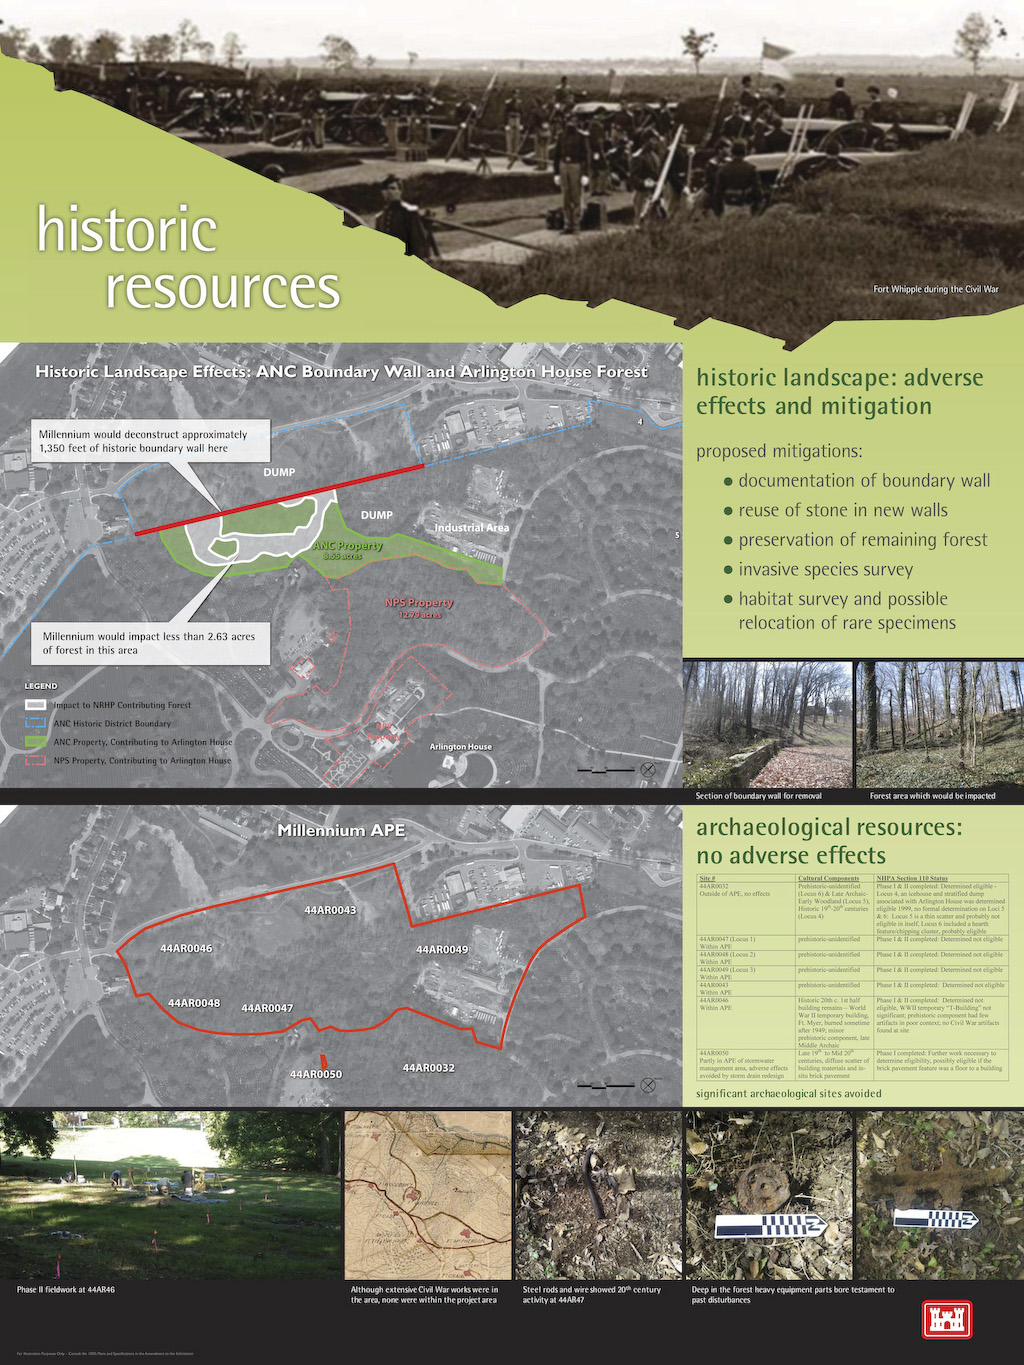 A graphic overview of the historic resources located within the boundaries of Arlington National Cemetery's Millennium Project. The project will add 30,000 burial and niche spaces to the cemetery.